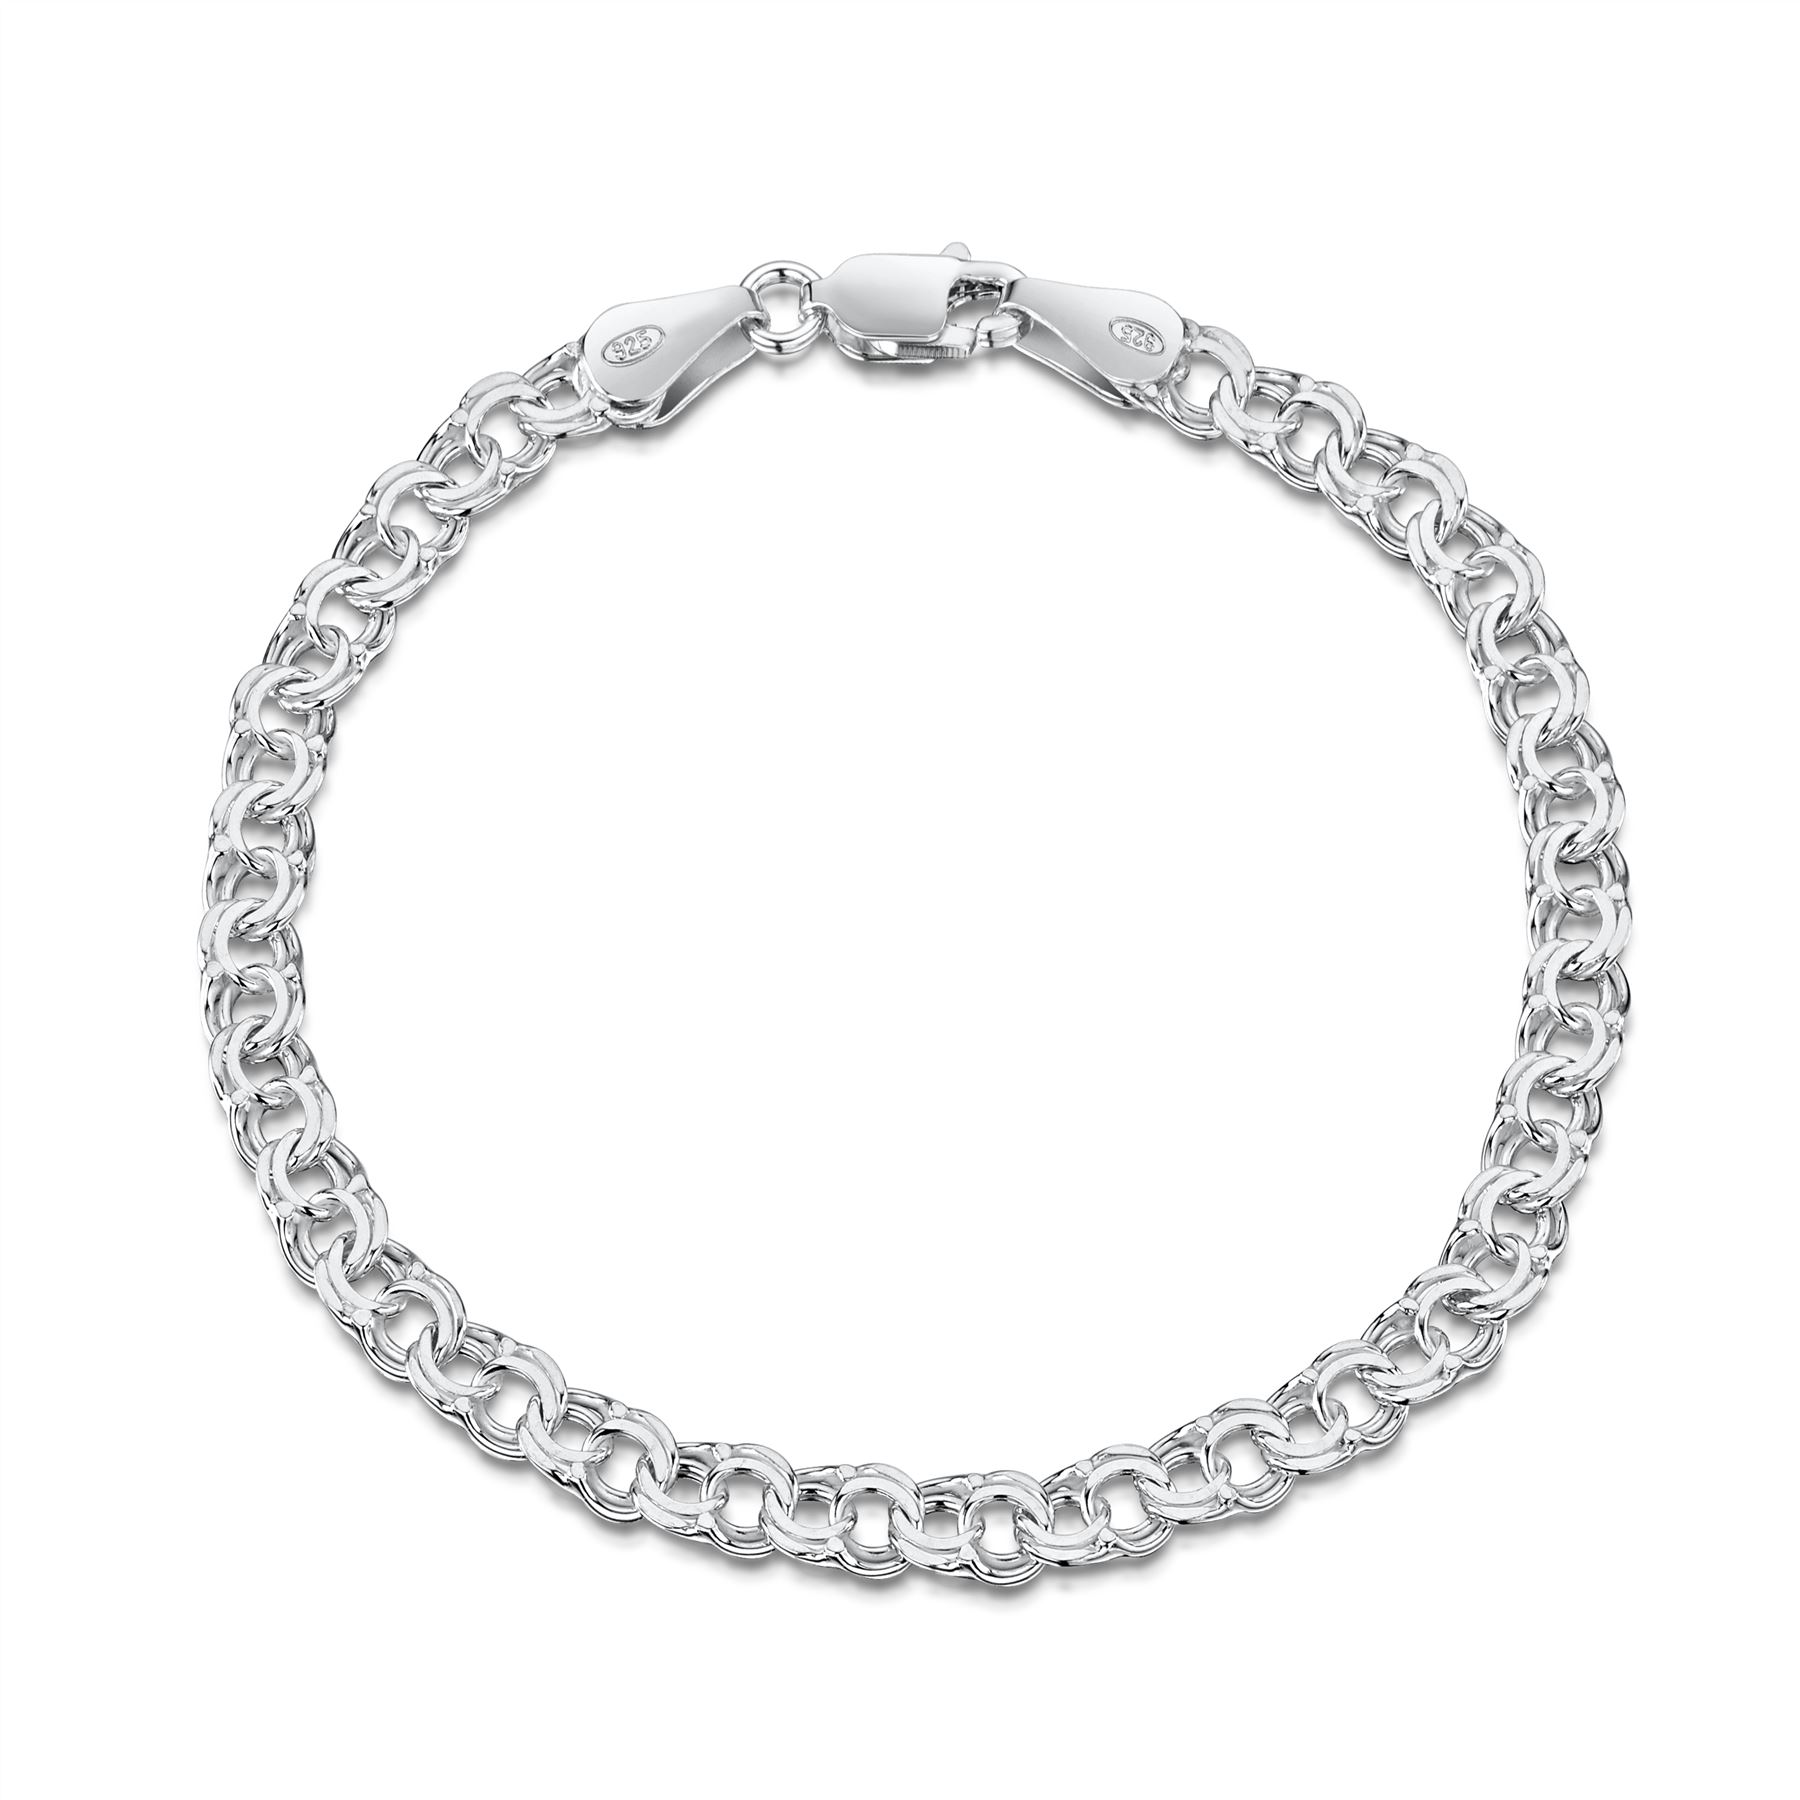 Amberta-Jewelry-Genuine-925-Sterling-Silver-Bracelet-Bangle-Chain-Made-in-Italy thumbnail 92